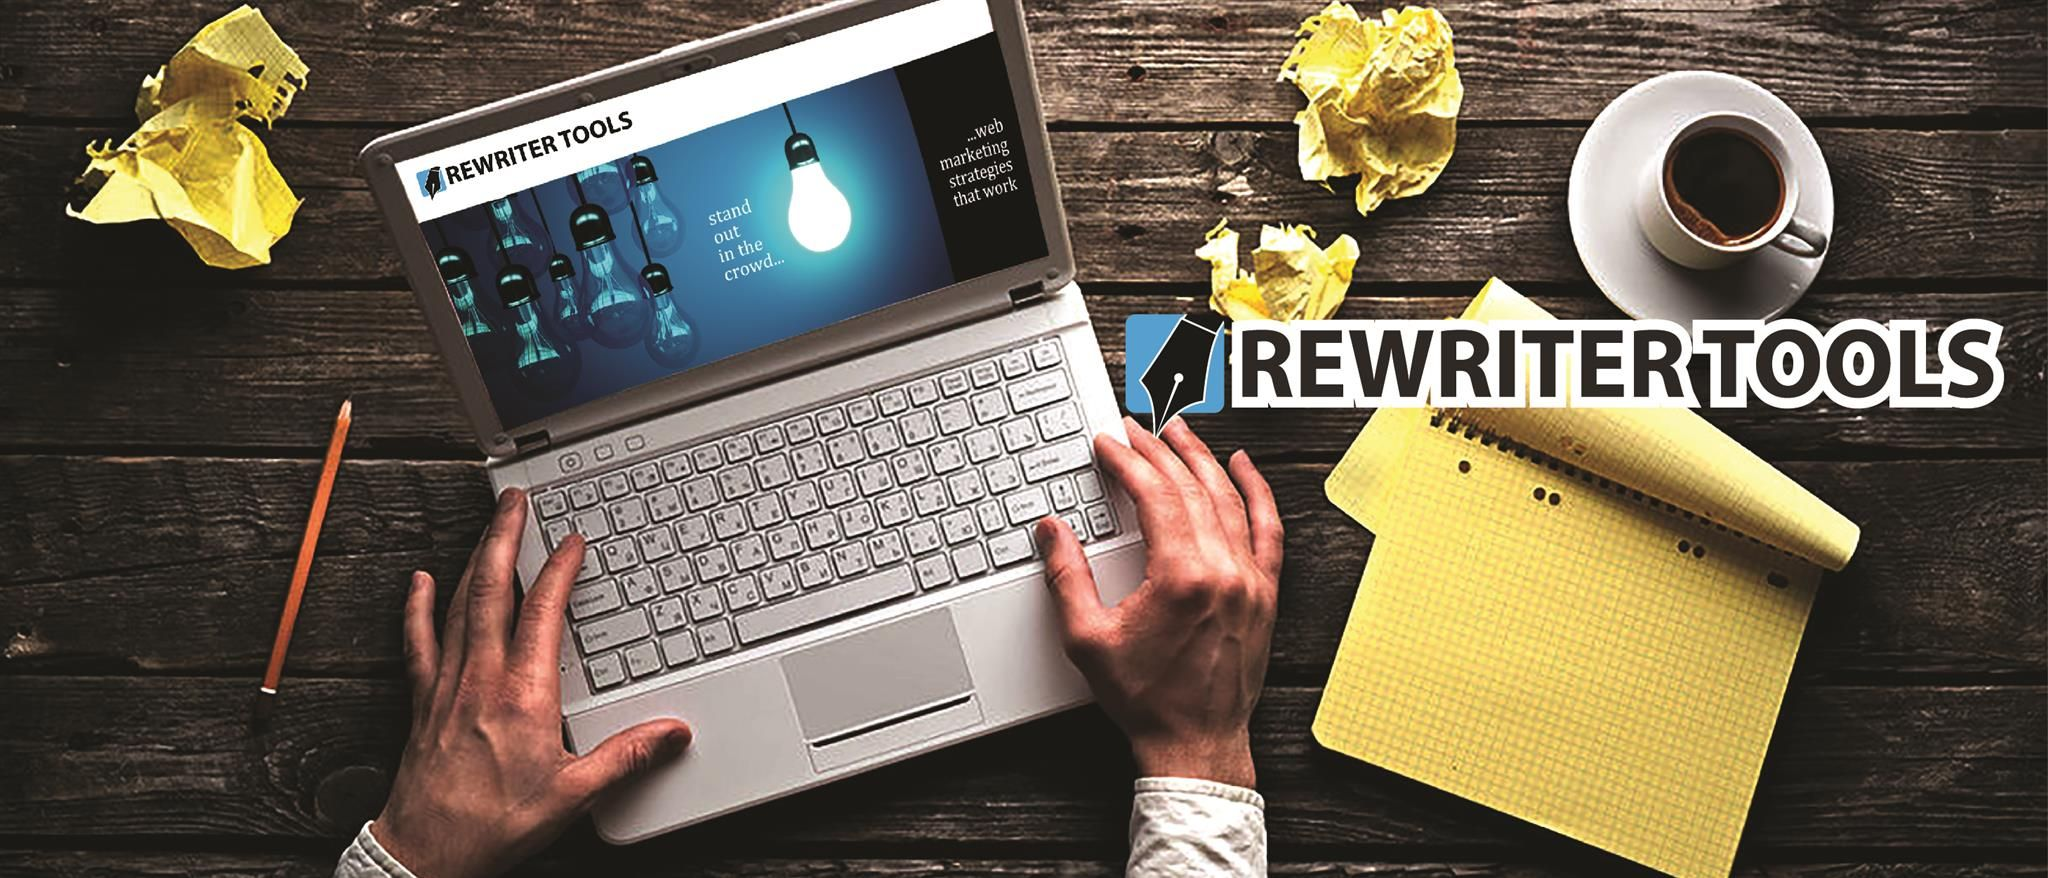 Rewritertool Offering The Paraphrasing Tool That I Different From Other In Respect Of Engine A Well Giving Benefit Paraphrase Free Checking Online Tools Grammar Check